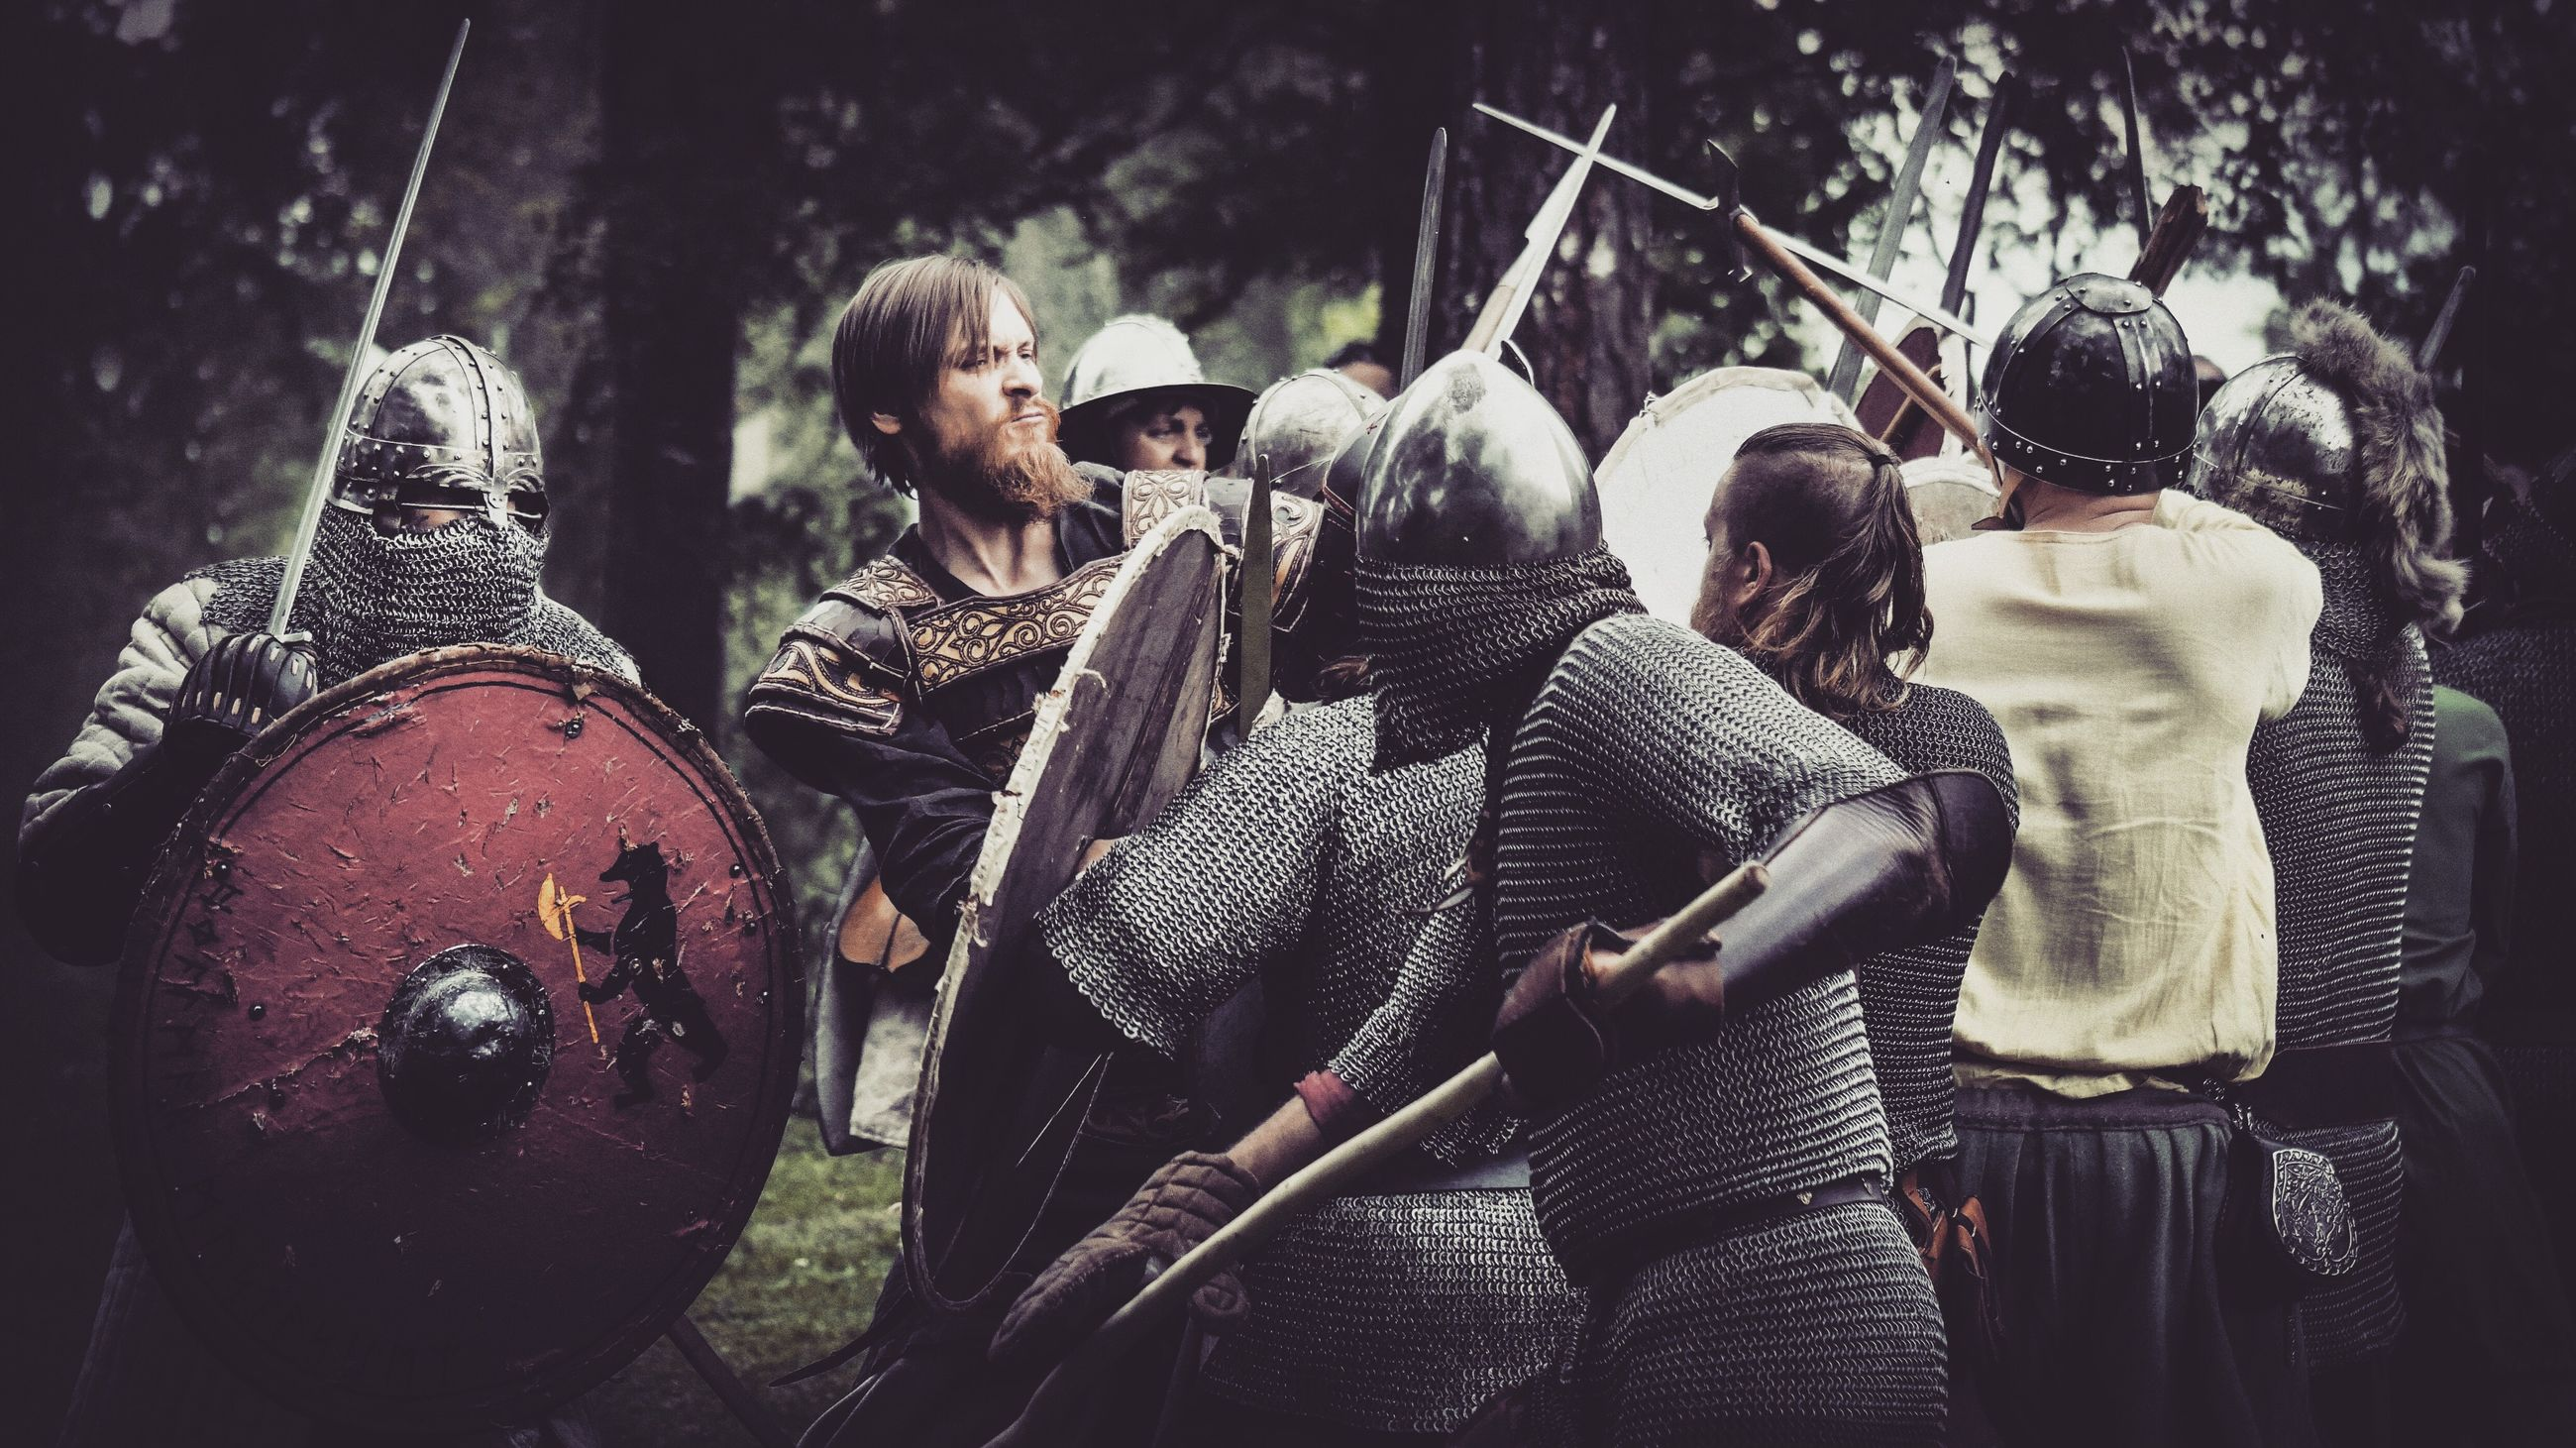 rear view, real people, group of people, weapon, day, men, people, lifestyles, group, outdoors, clothing, tree, protection, nature, adult, knight - person, leisure activity, holding, history, the past, suit of armor